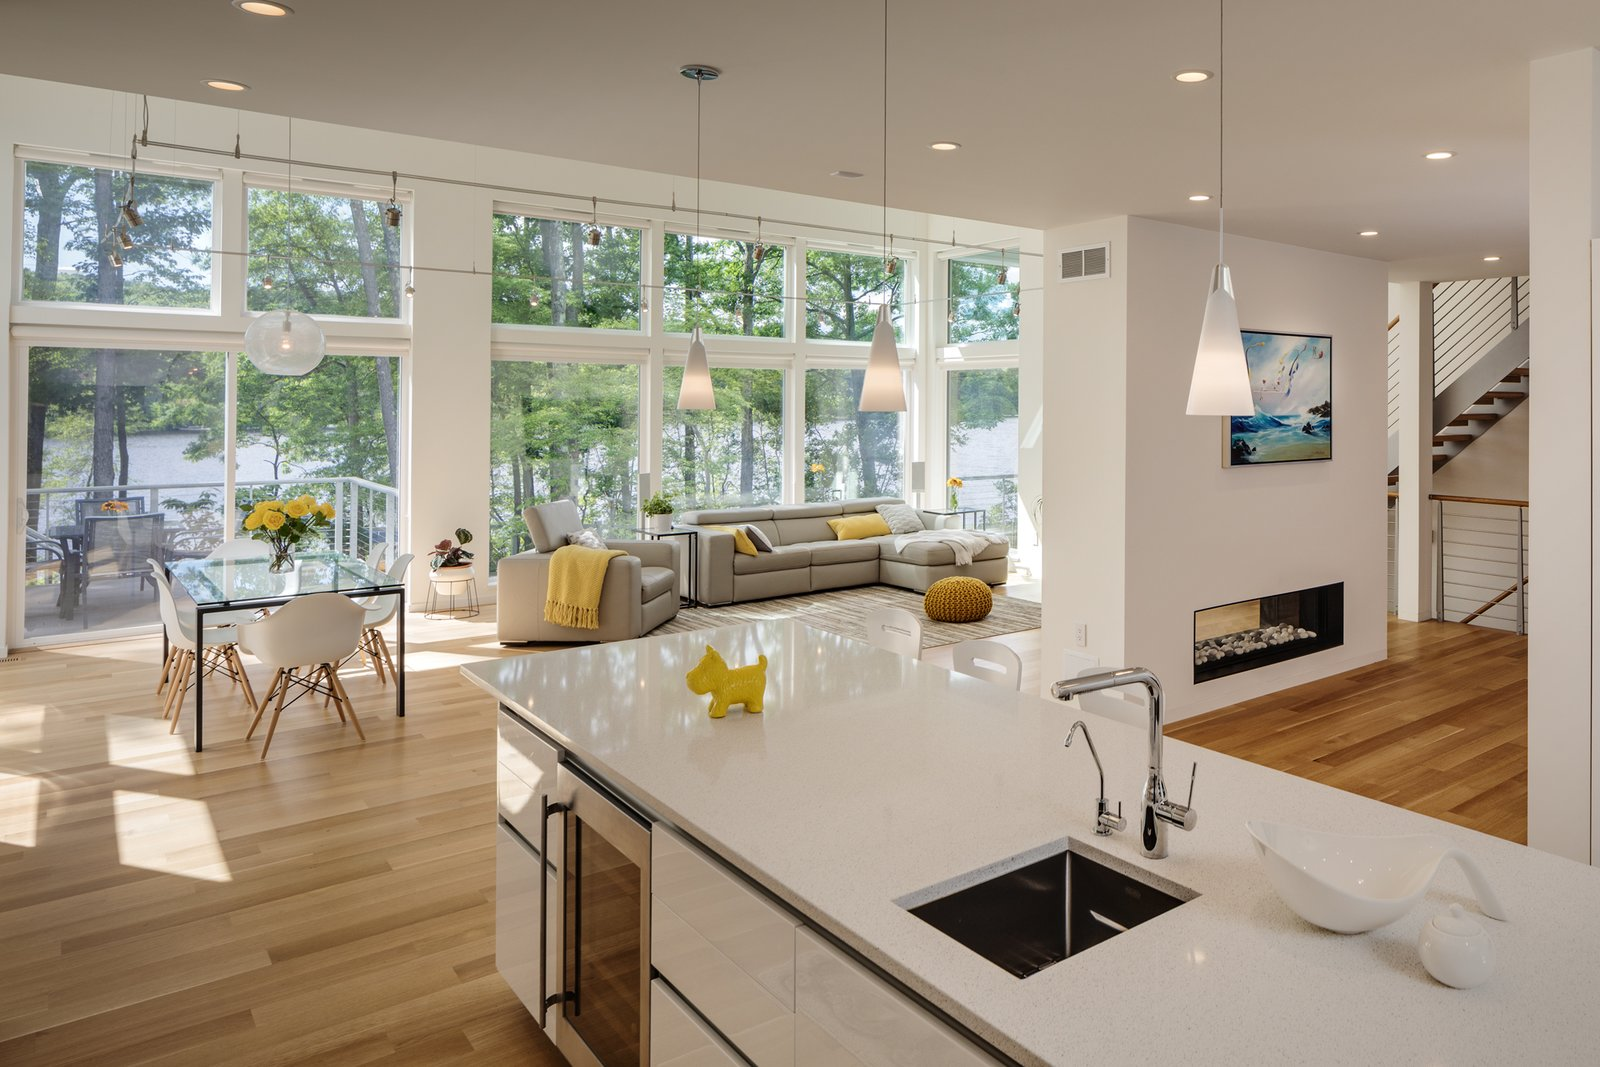 View of dining room and living room from the kitchen  Khabensky Residence by Richard Pedranti Architect